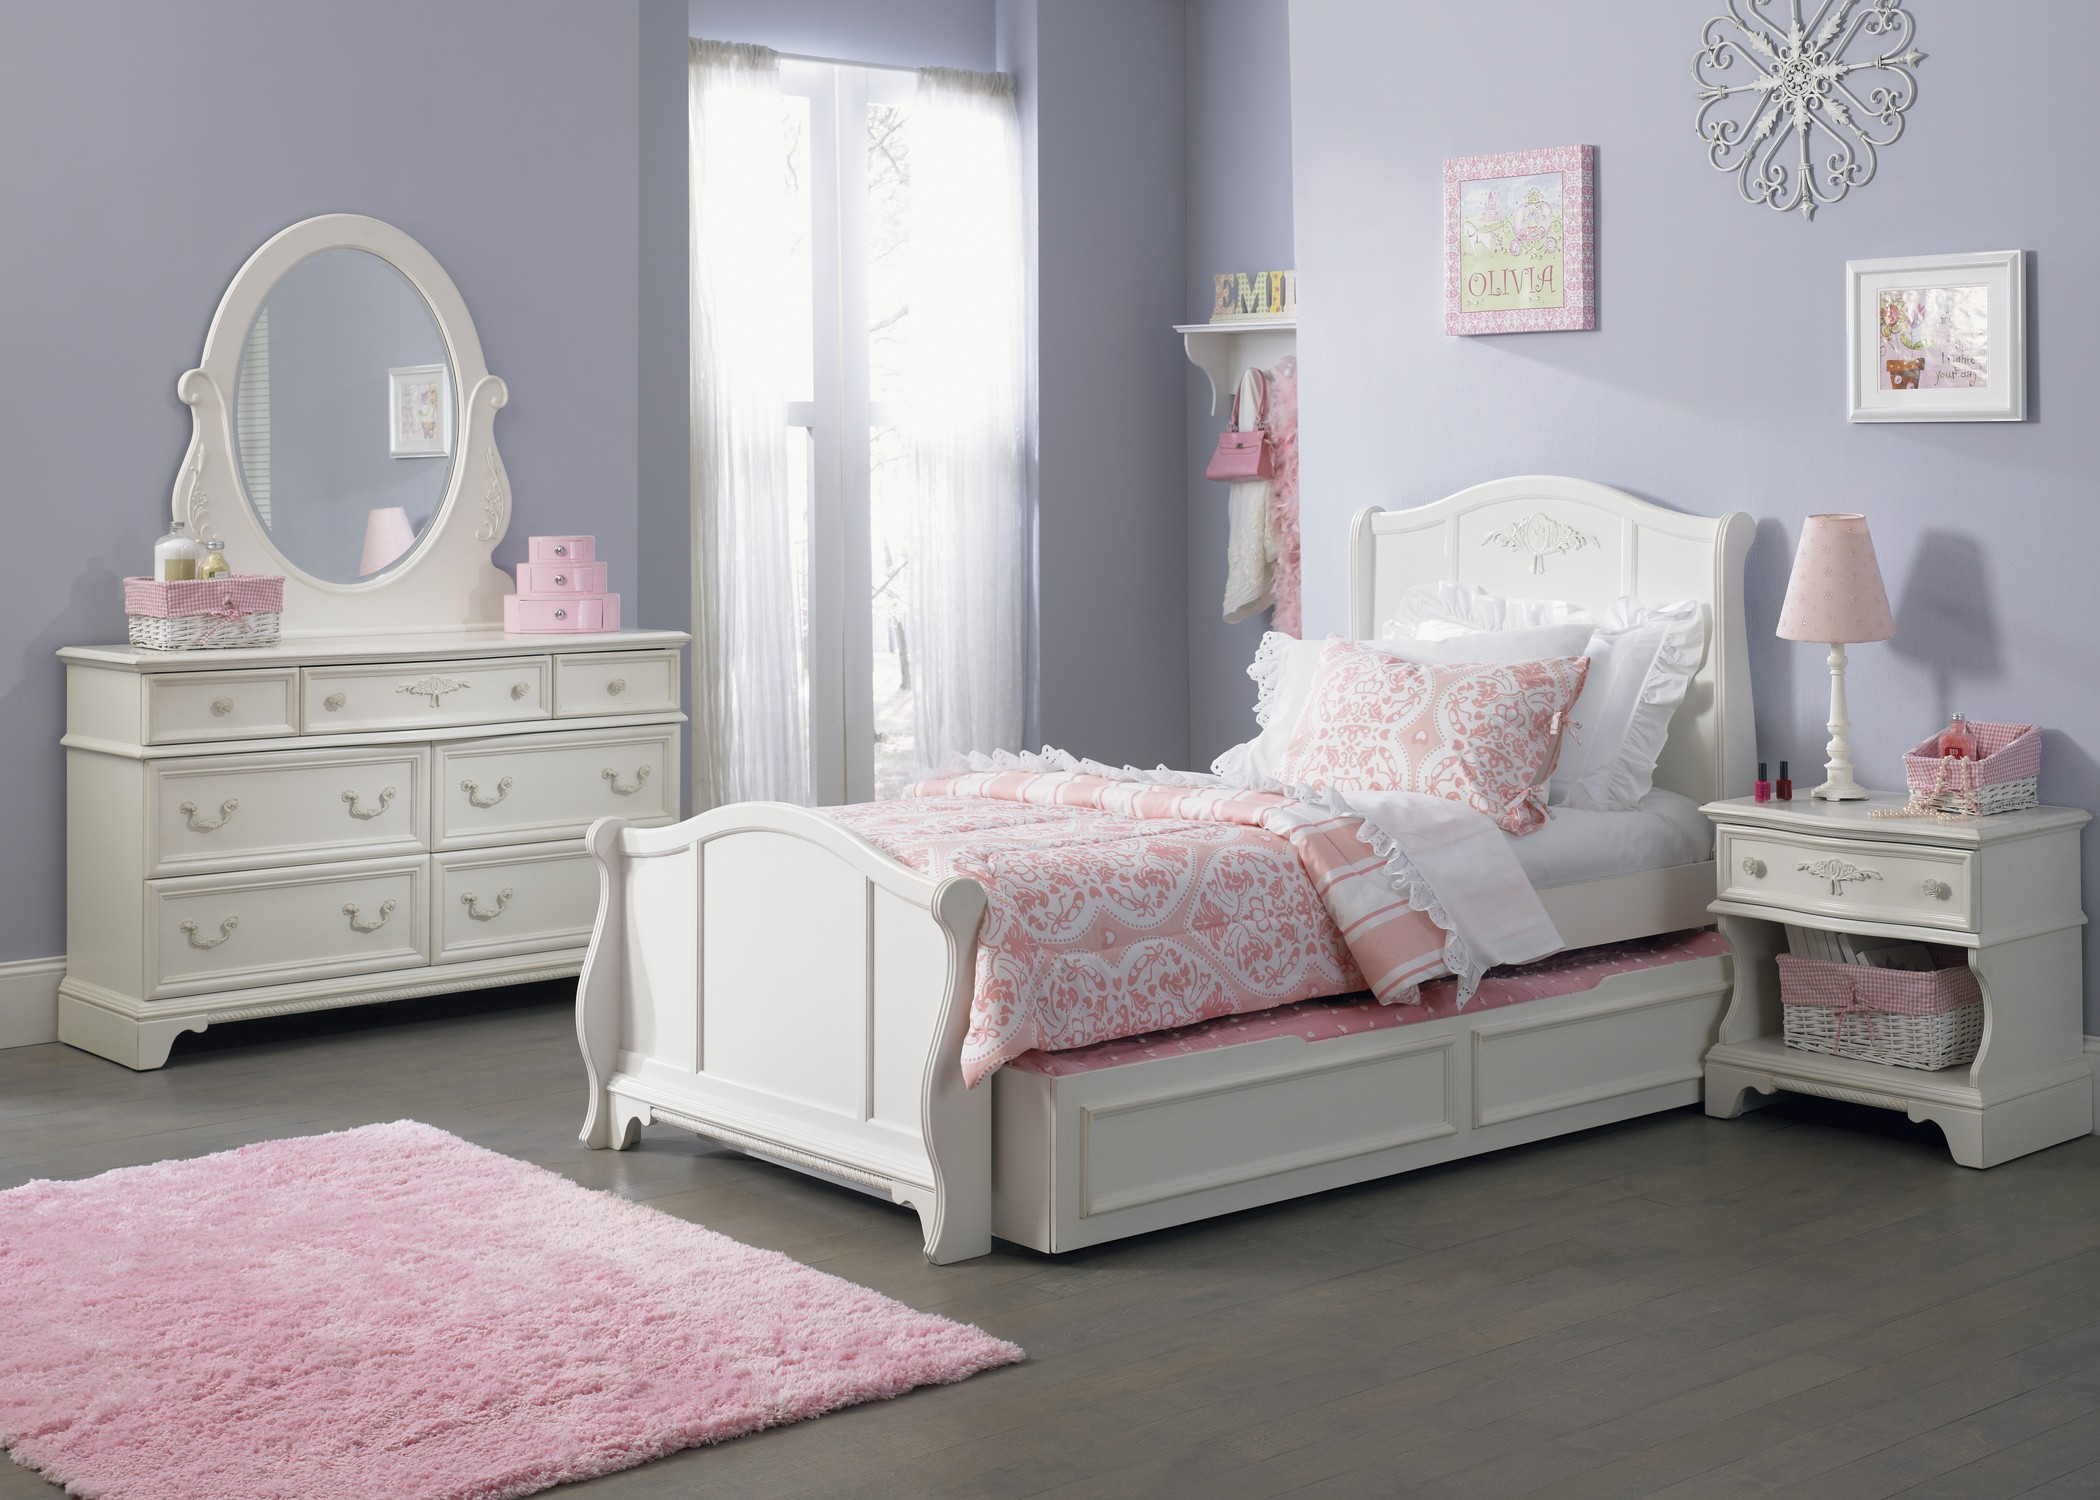 Arielle Youth Sleigh Bedroom Set from Liberty 352 YBR TSL